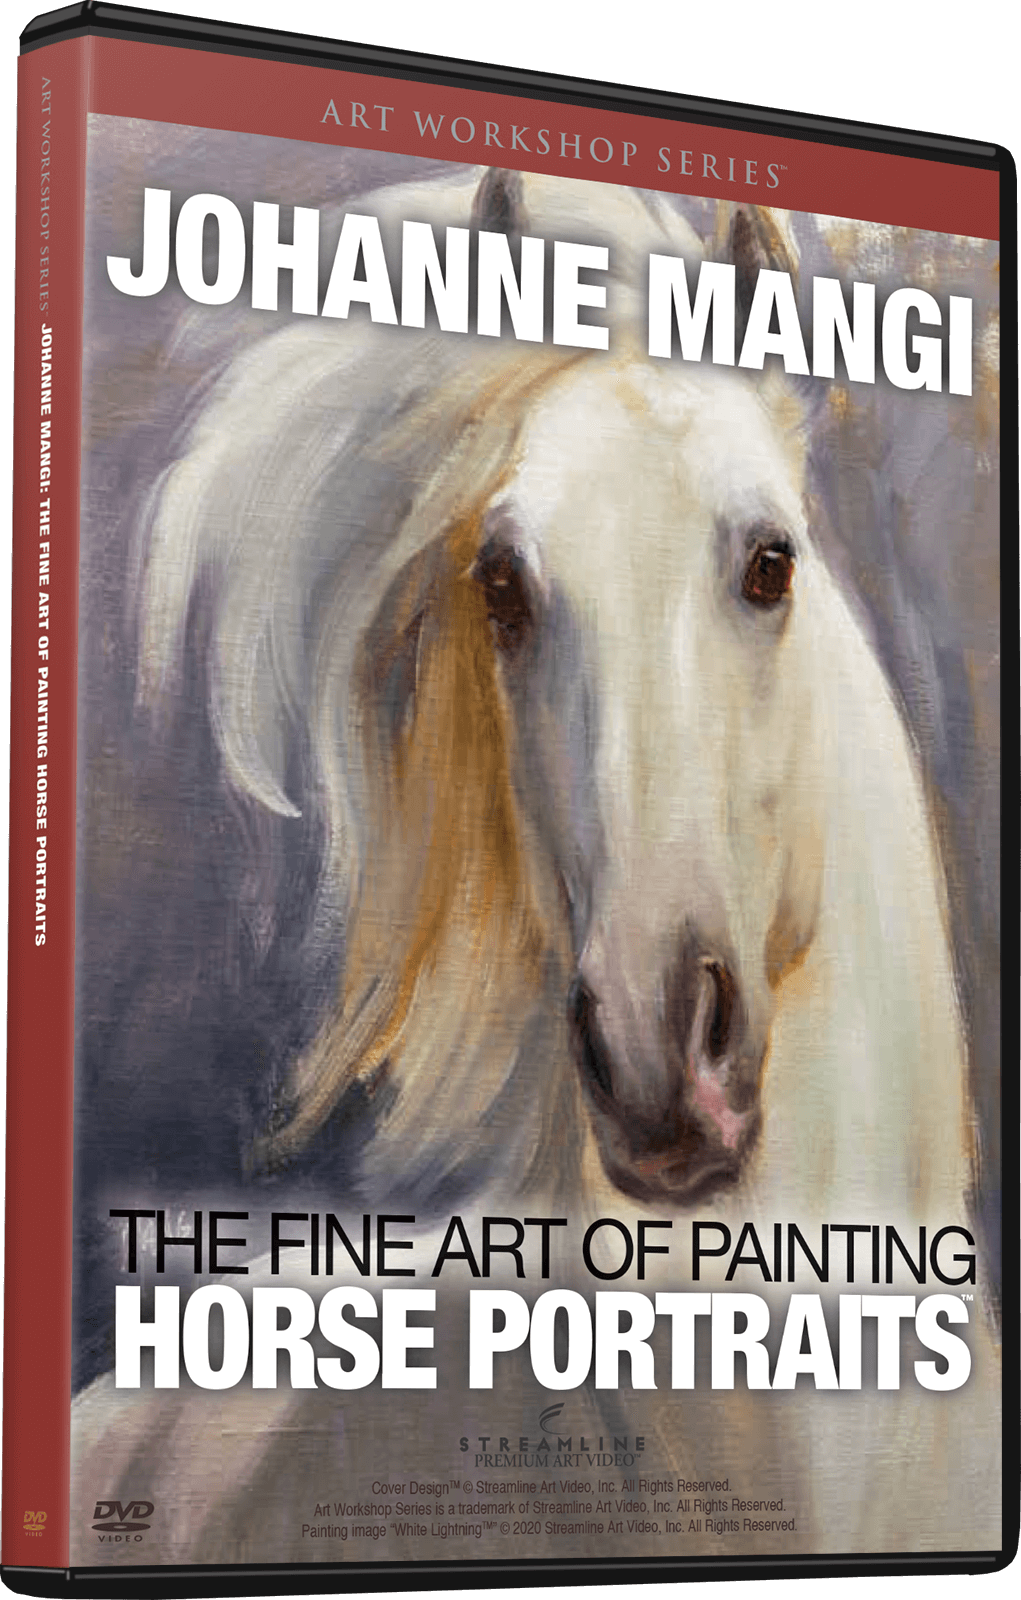 Johanne Mangi: The Fine Art of Painting Horse Portraits